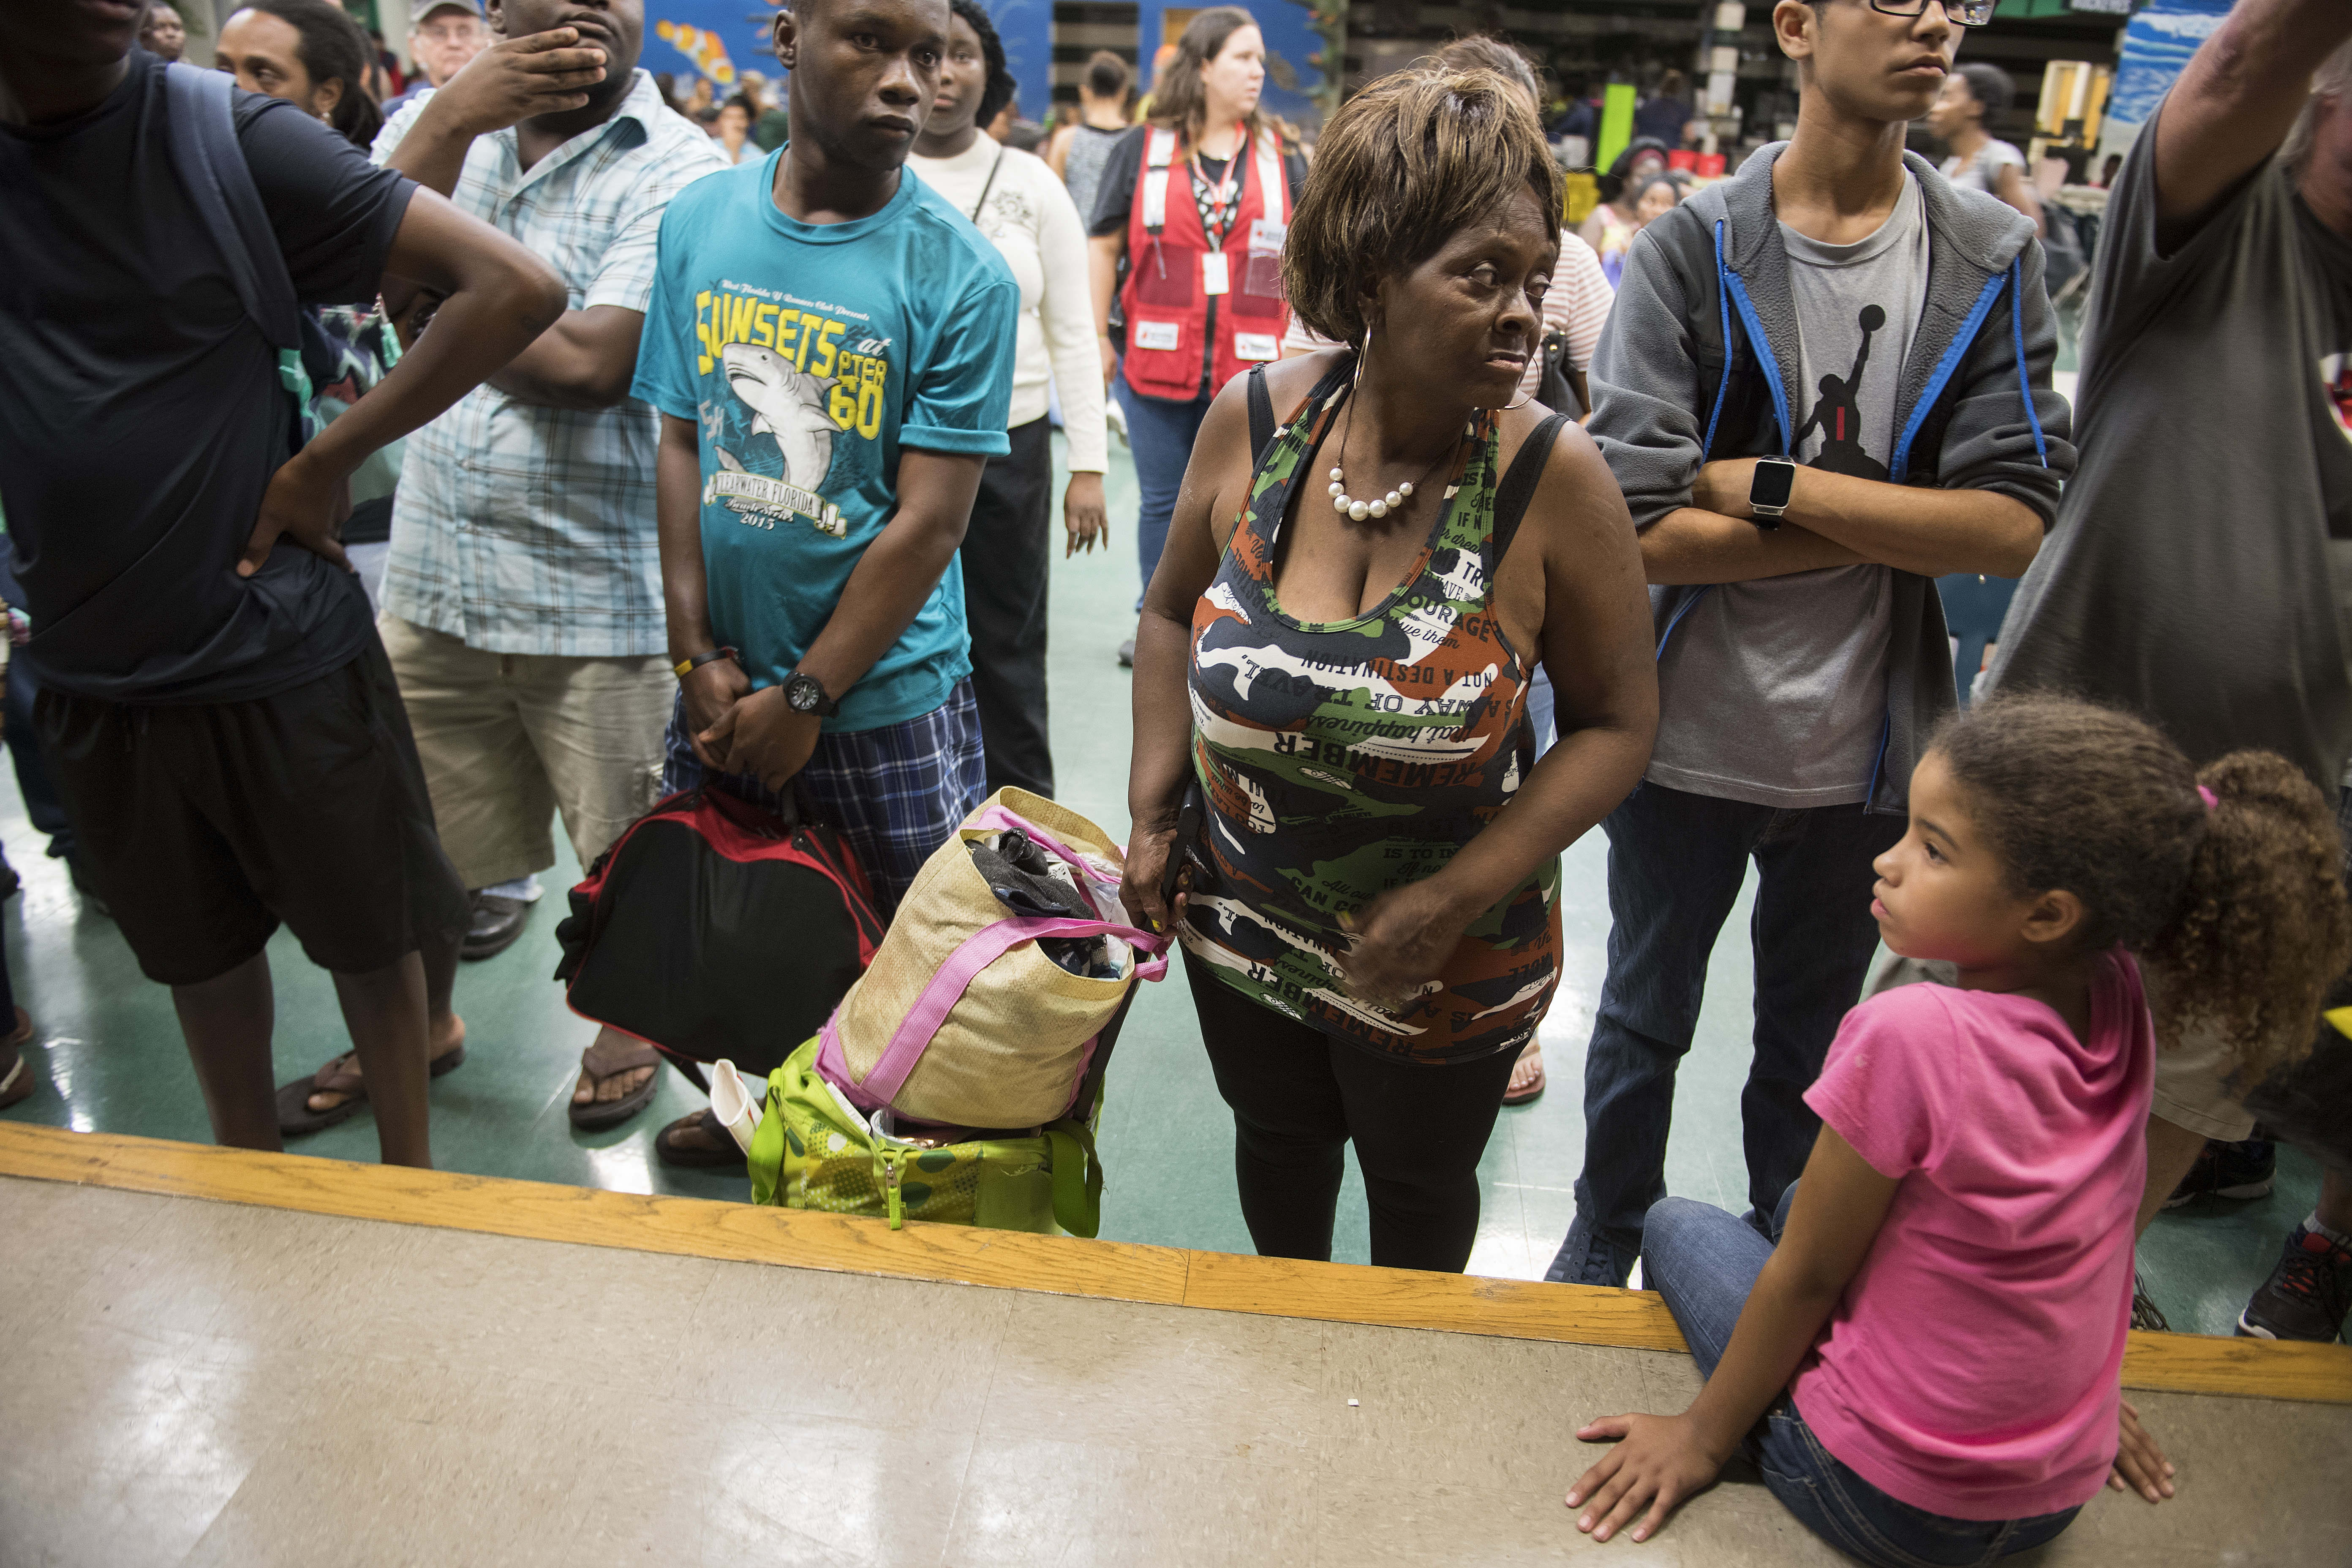 A group of people wait in the cafeteria for room assignments at a shelter within the Pizzo Elementary School in Tampa, Florida where Tampa residents are fleeing the evacuation zones ahead of Hurricane Irma's landfall on Sept. 9, 2017. (JIM WATSON/AFP/Getty Images)